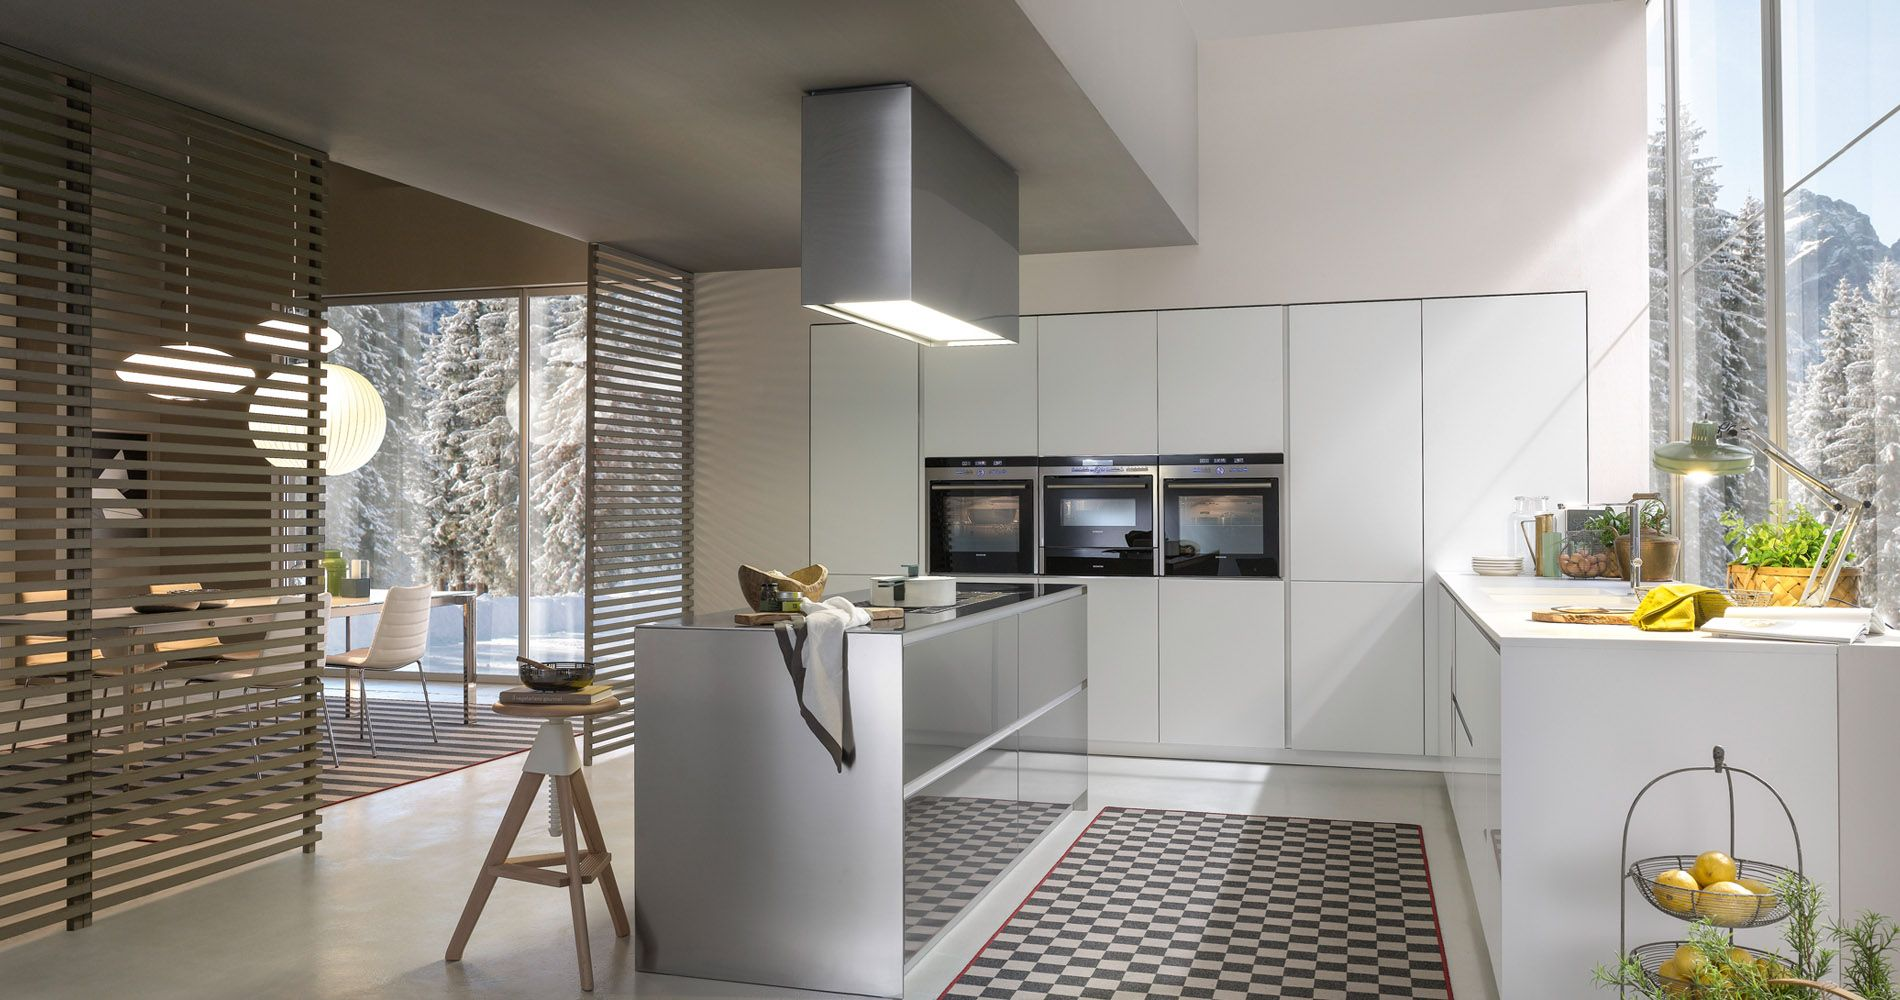 Kitchen Design Brands New Pedini Is The Brand Behind Kitchen Design Of Italian Kitchens Inspiration Design